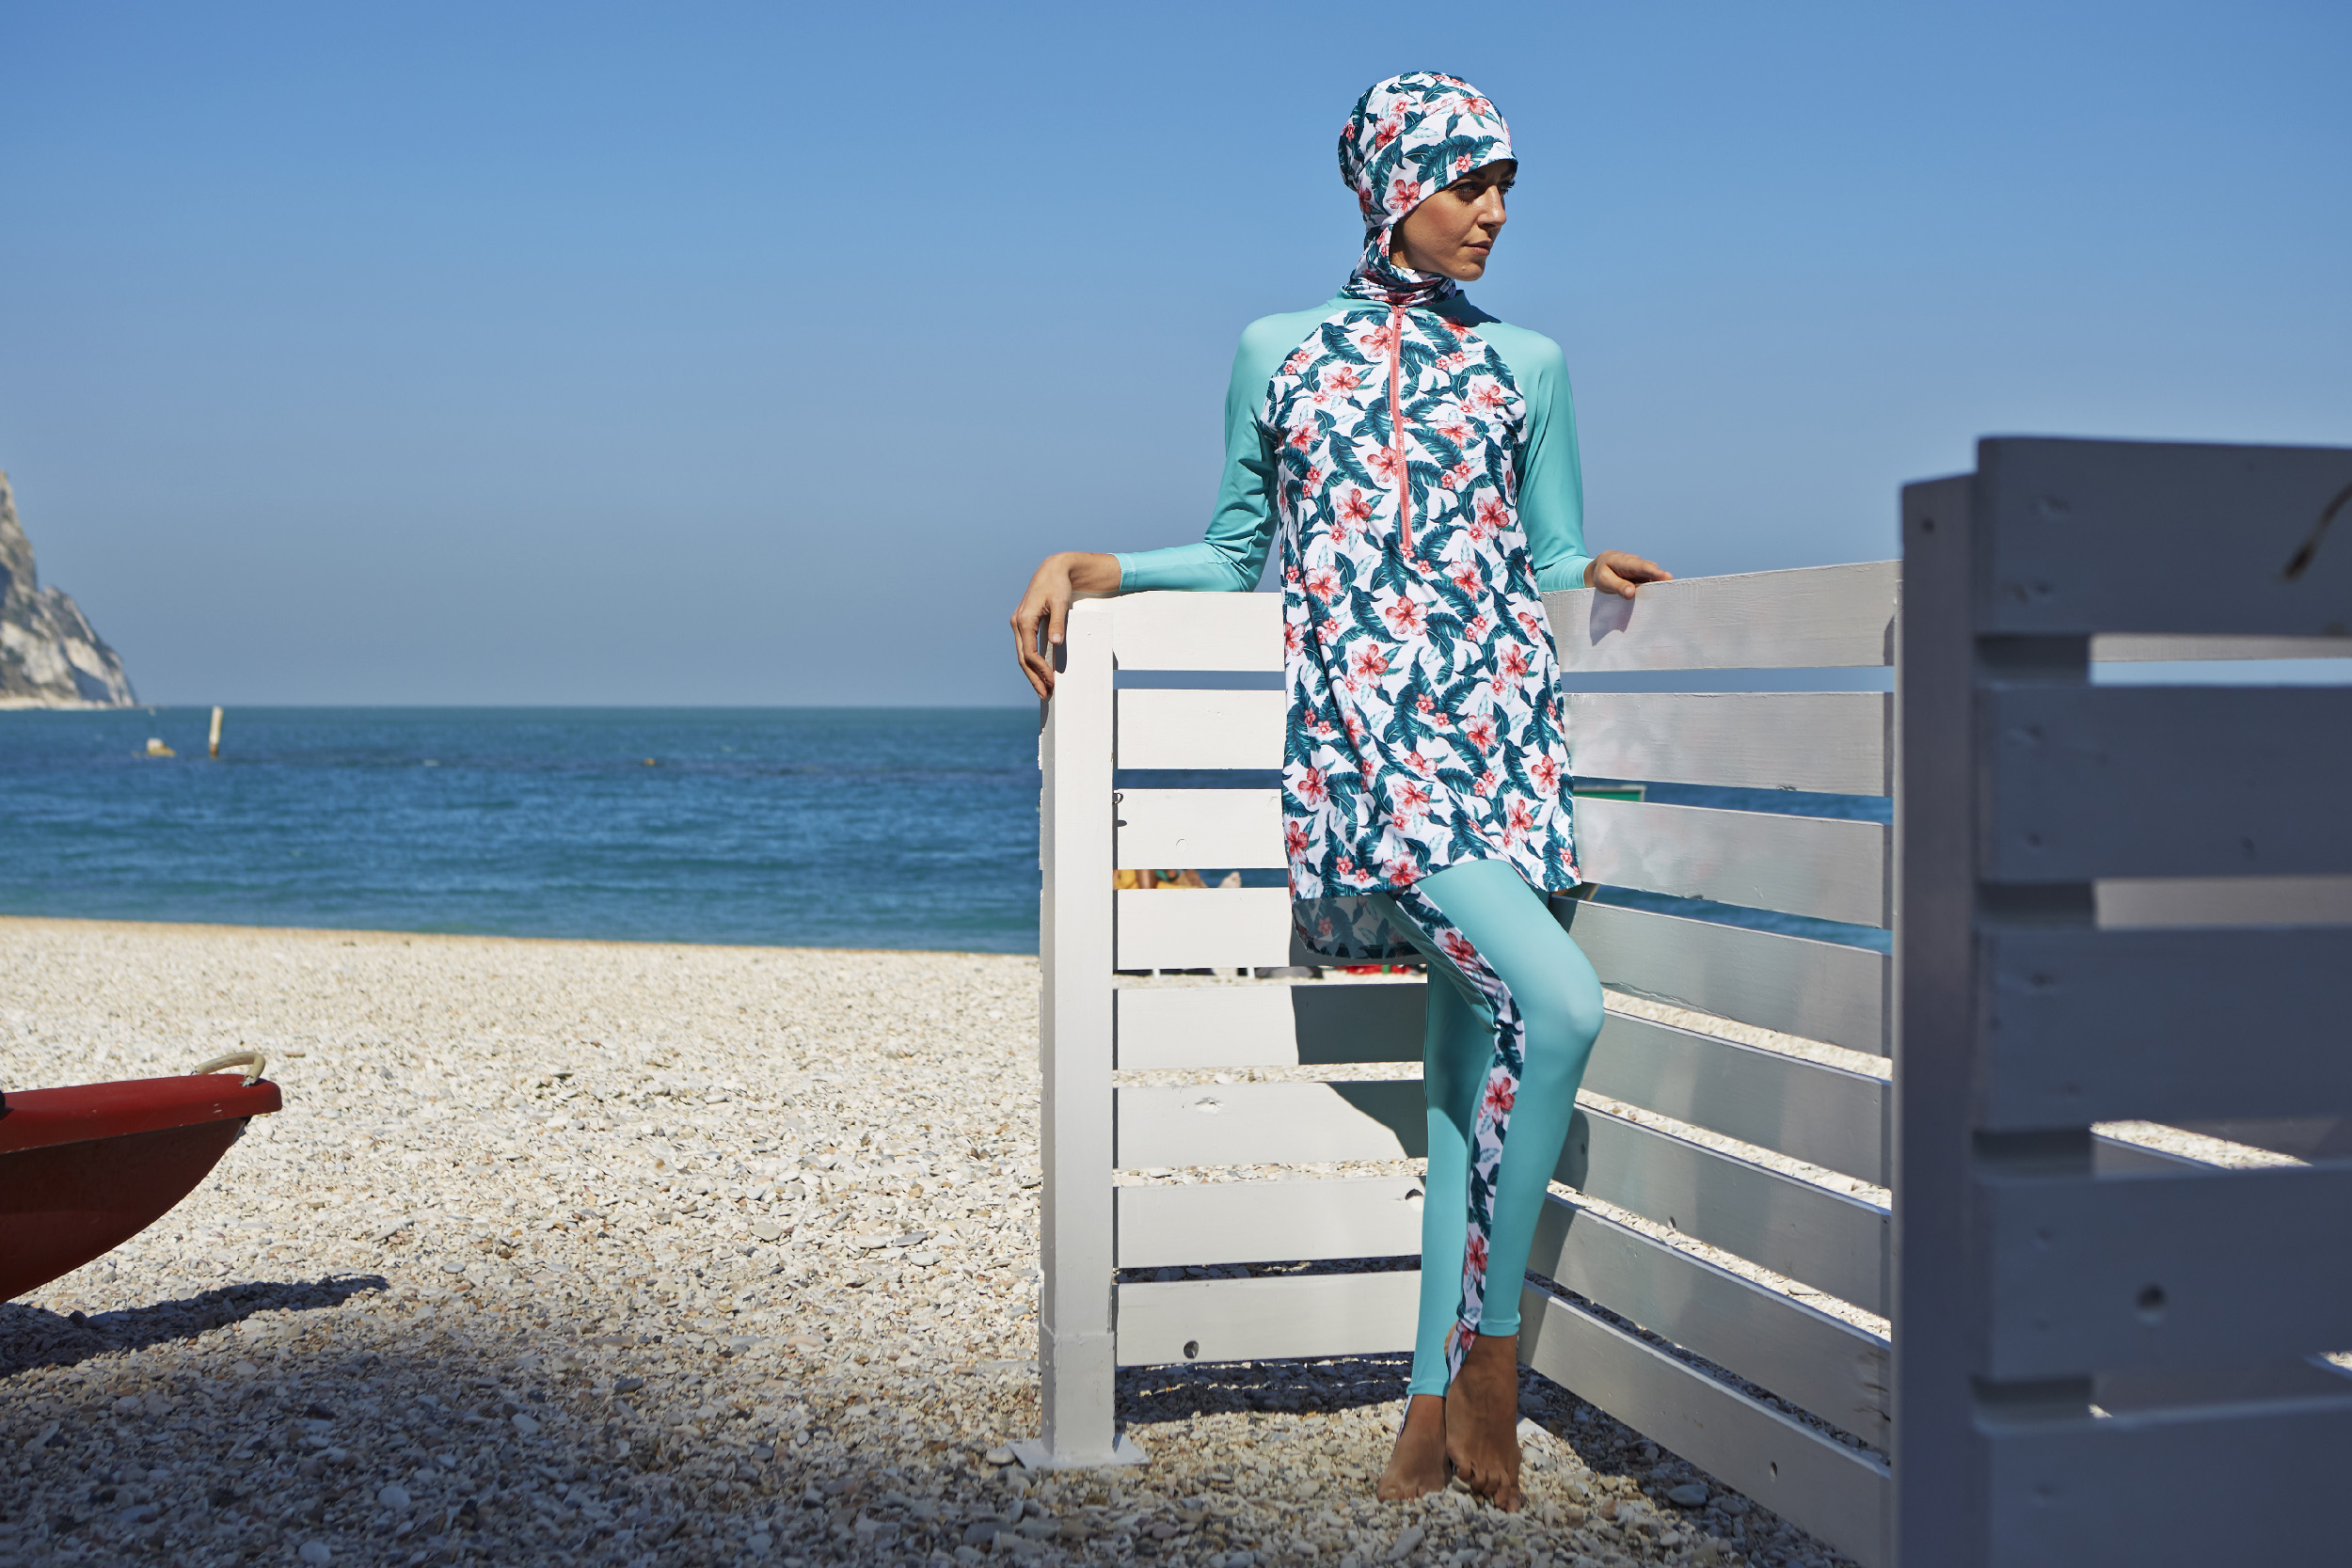 munamer muslim swimsuits islamic burkini